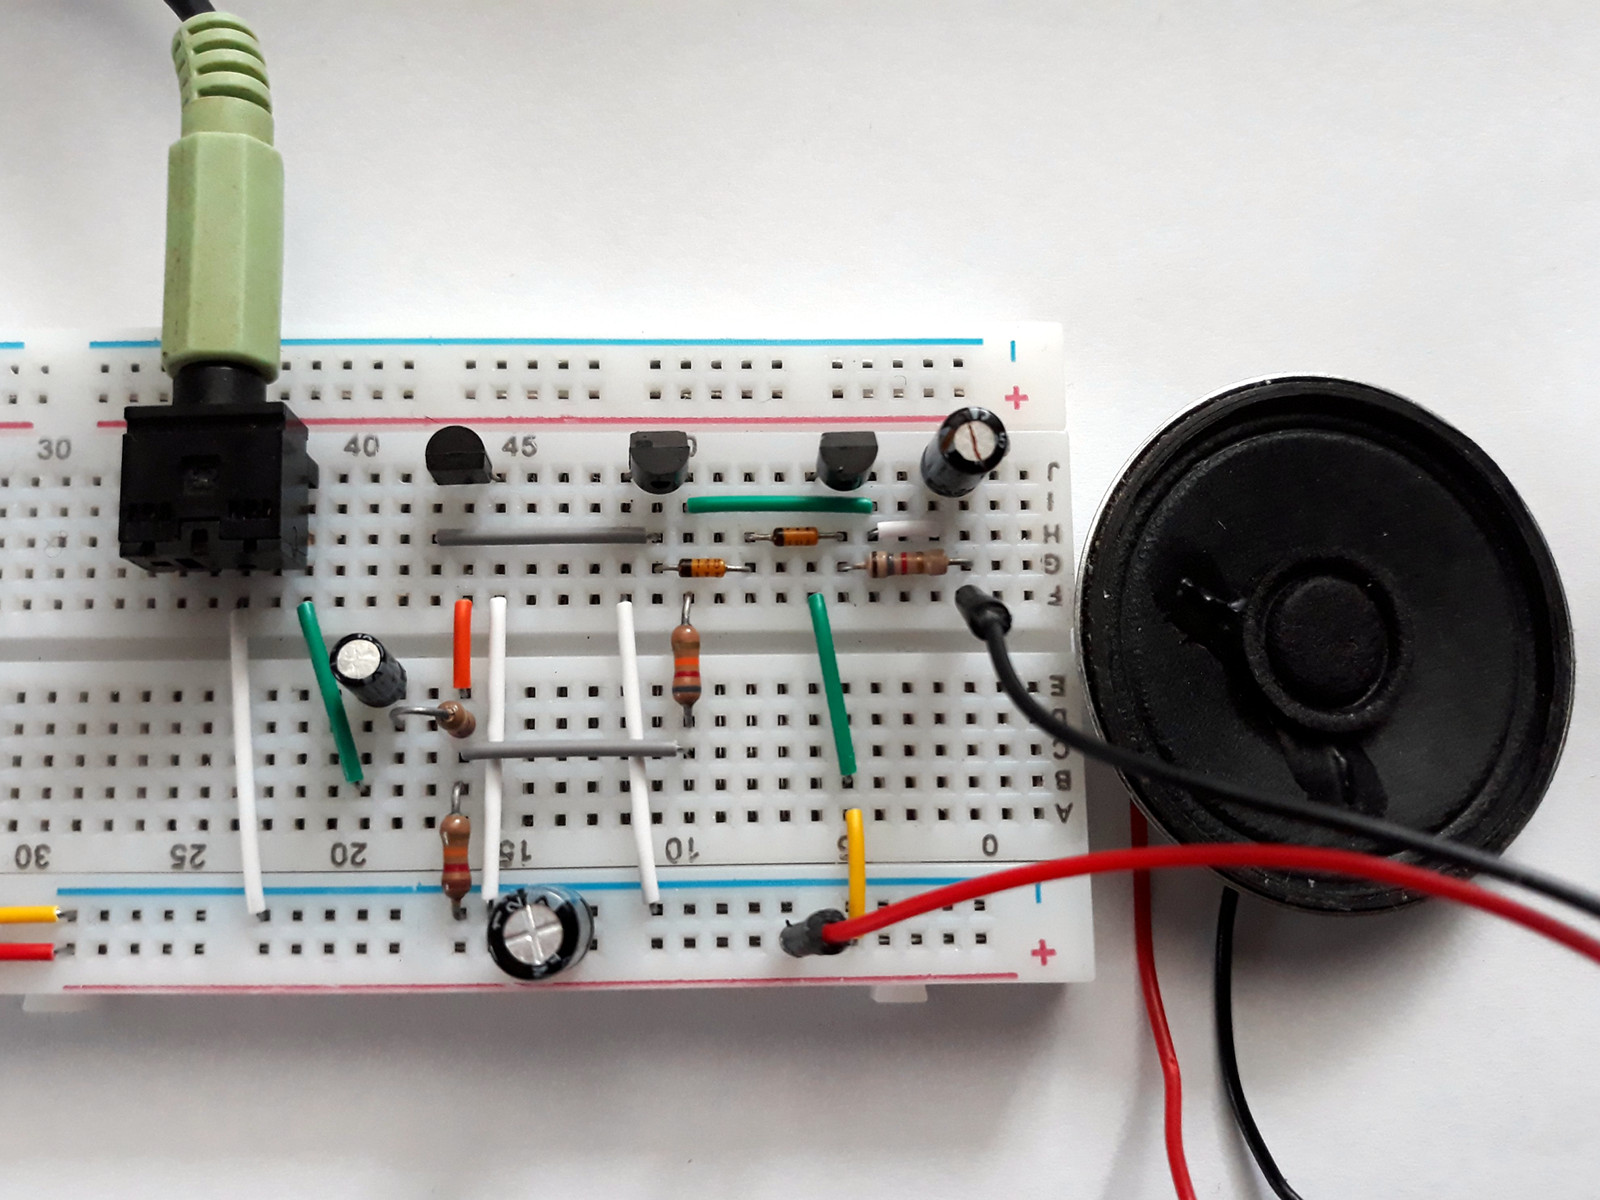 Audio Amplifier With Common Transistors One Transistor Use Of In A Circuit Build On Breadboard